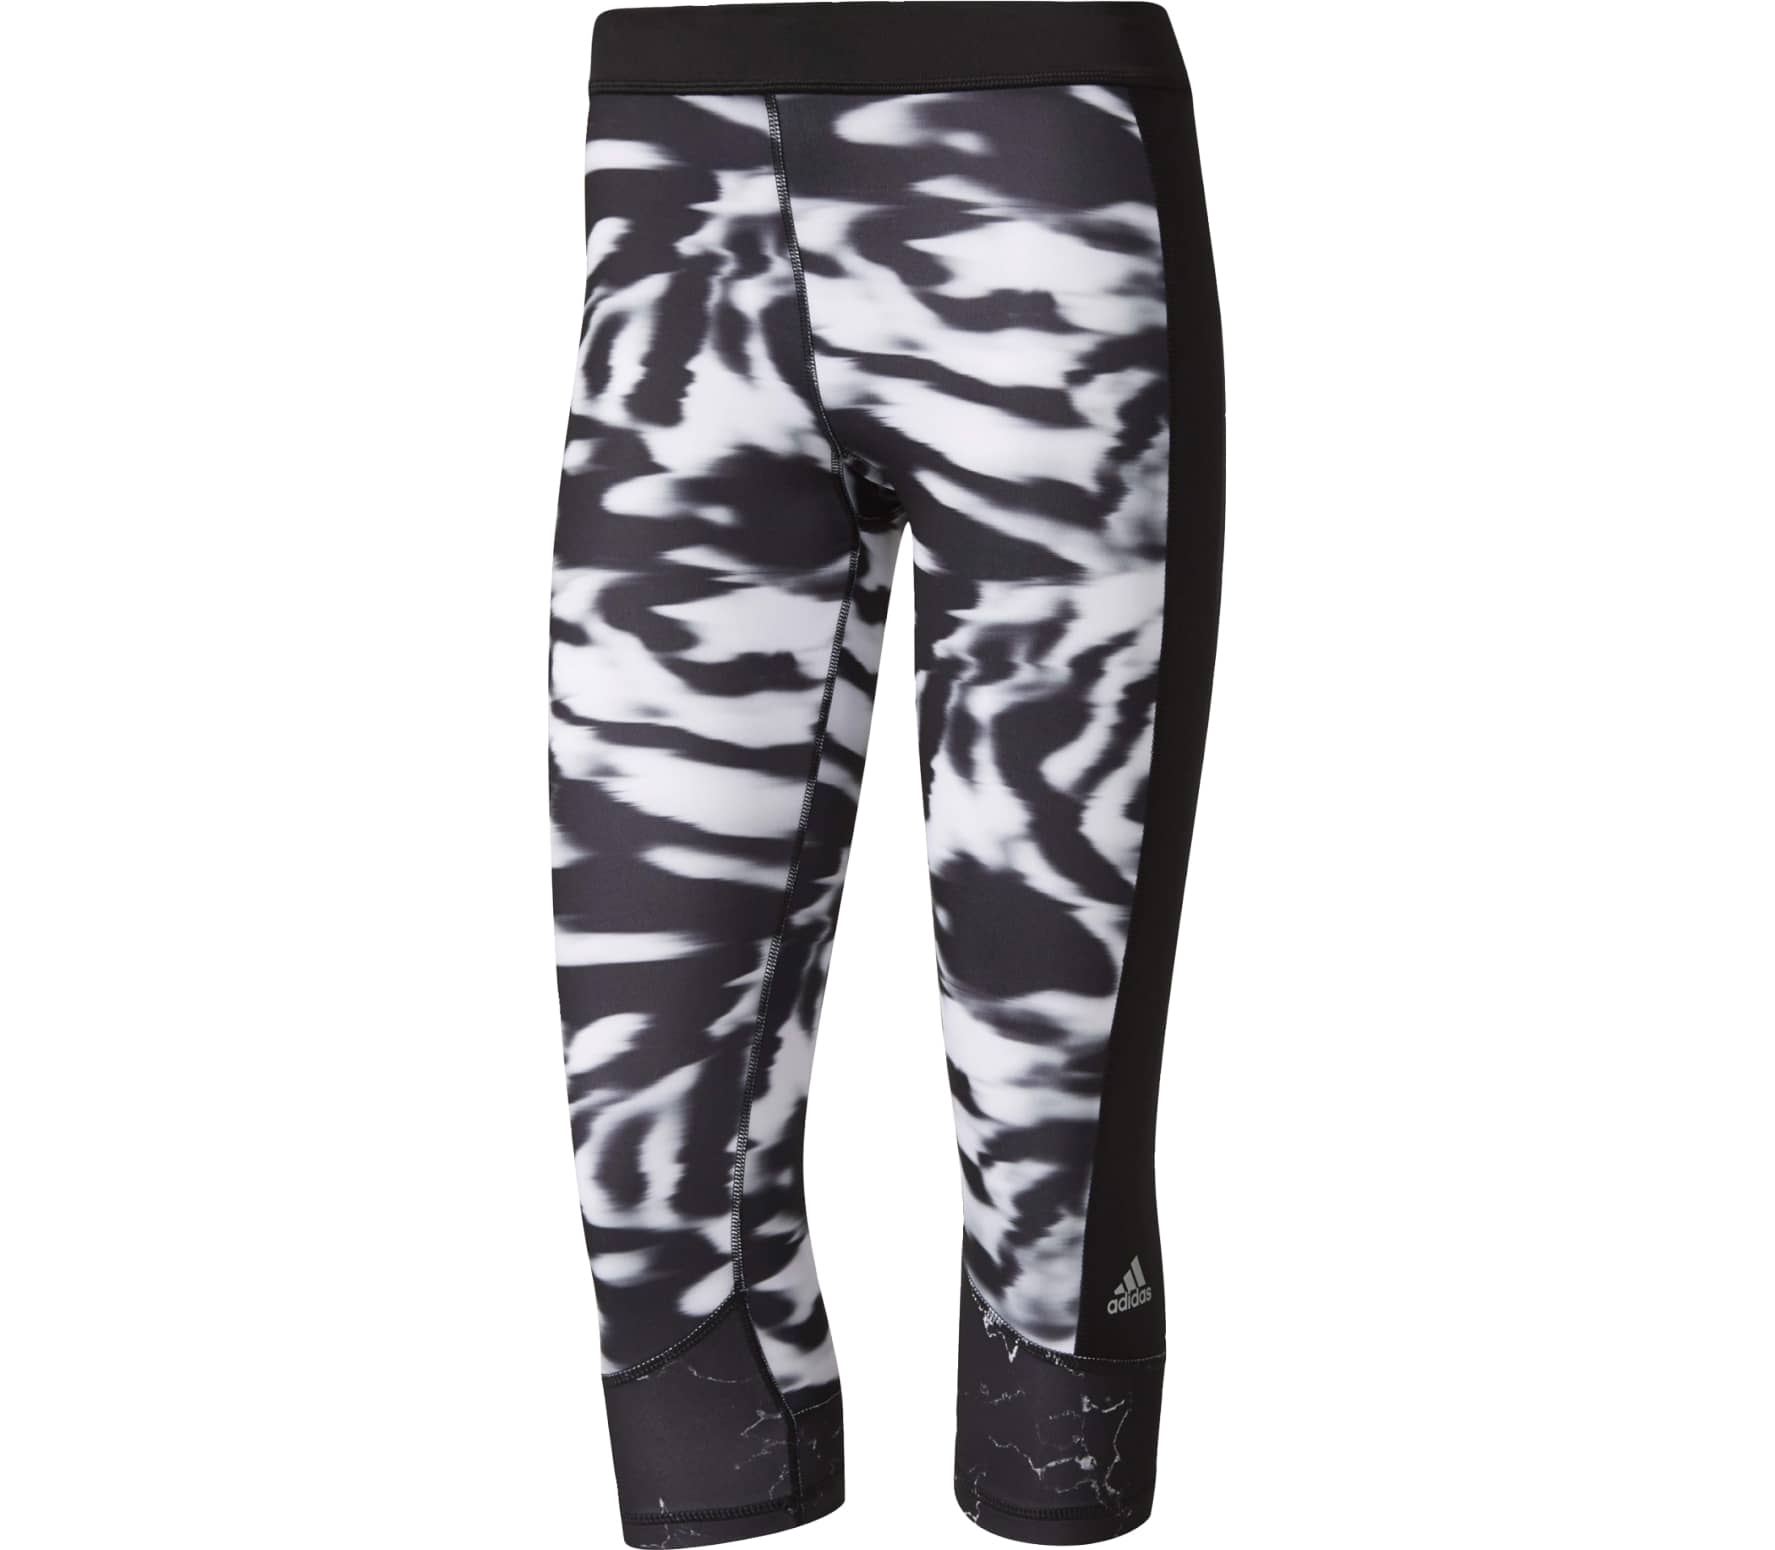 4e9ef8389d639 Adidas - Techfit capri pants Print 3 women's training pants (black/white)